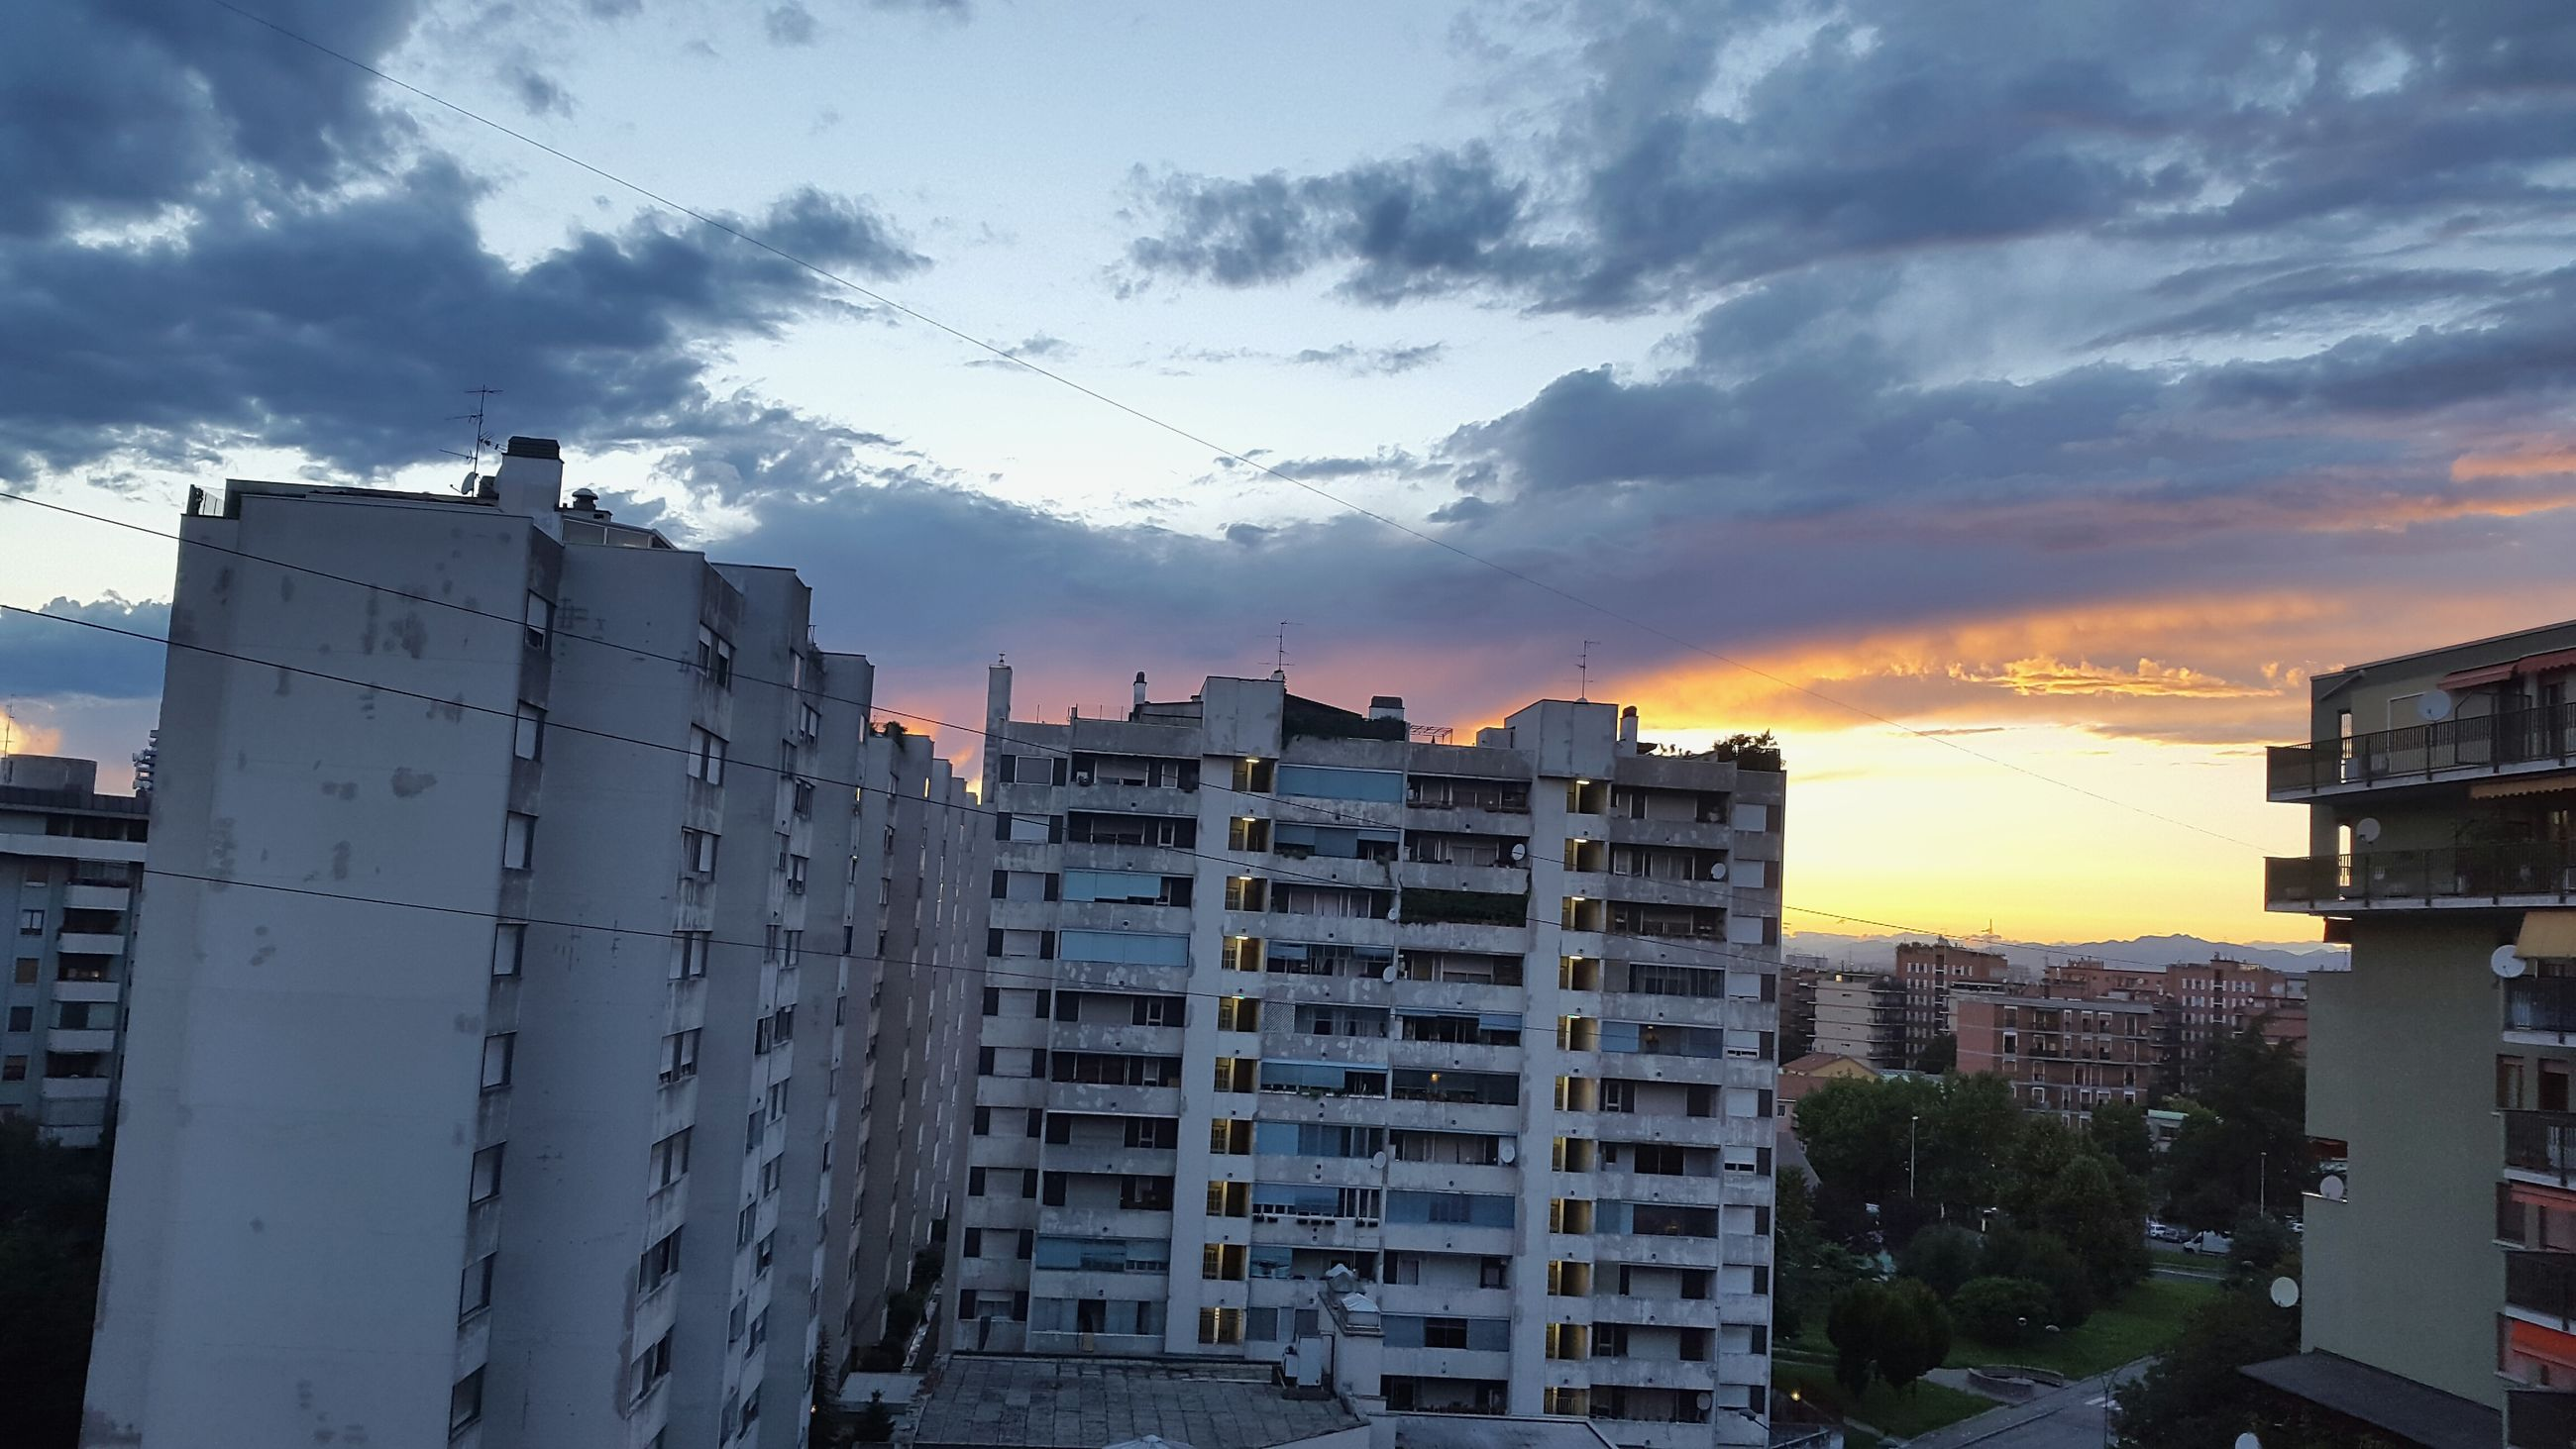 building exterior, architecture, built structure, sky, sunset, cloud - sky, city, cloudy, residential building, residential structure, cloud, building, cityscape, weather, residential district, dusk, overcast, orange color, outdoors, dramatic sky